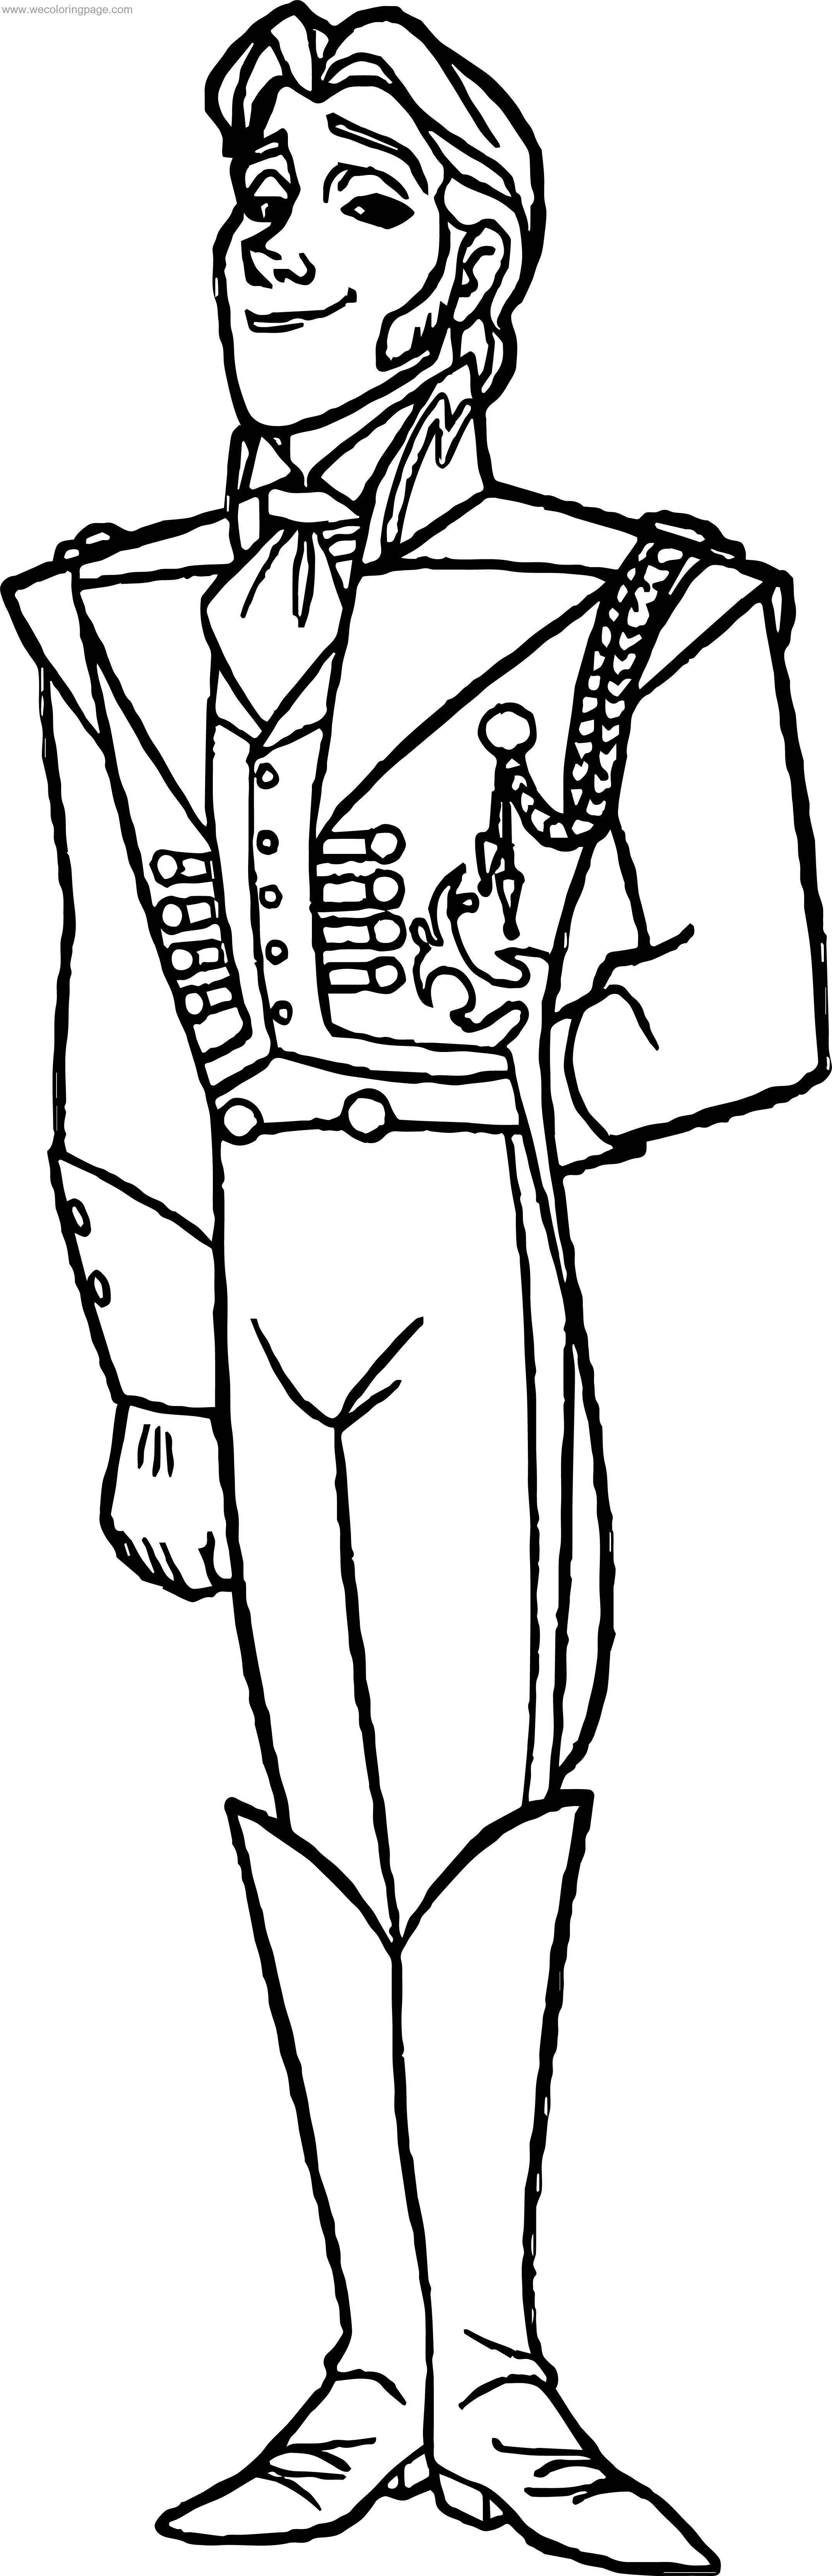 Hans Pose Coloring Page